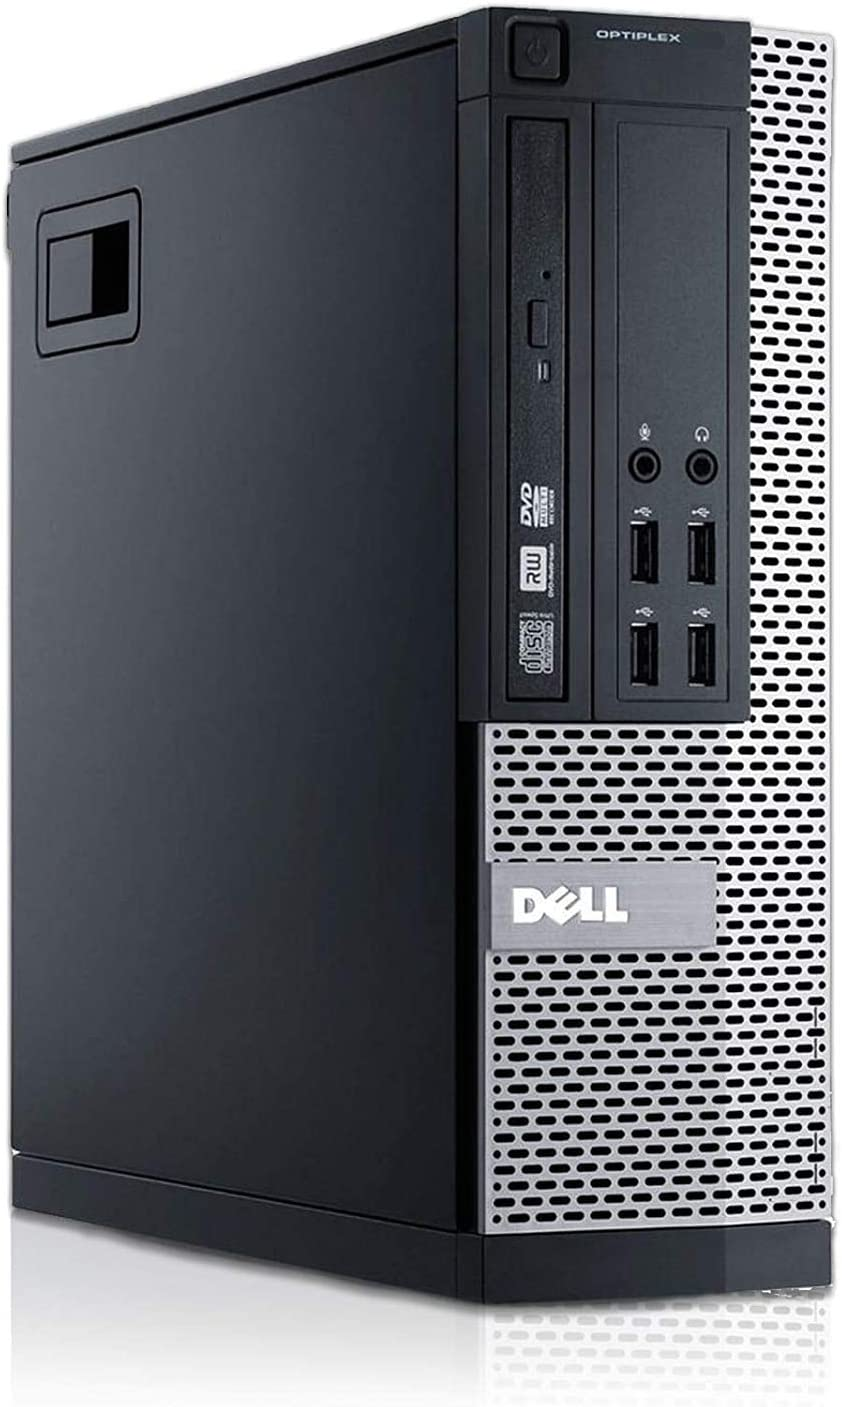 Ordinateur de Bureau Dell 7010 SFF - Core i5-3470 @ 3,2 GHz - 8Go RAM - 240Go SSD - DVD - Windows 10 Pro (Reconditionné)